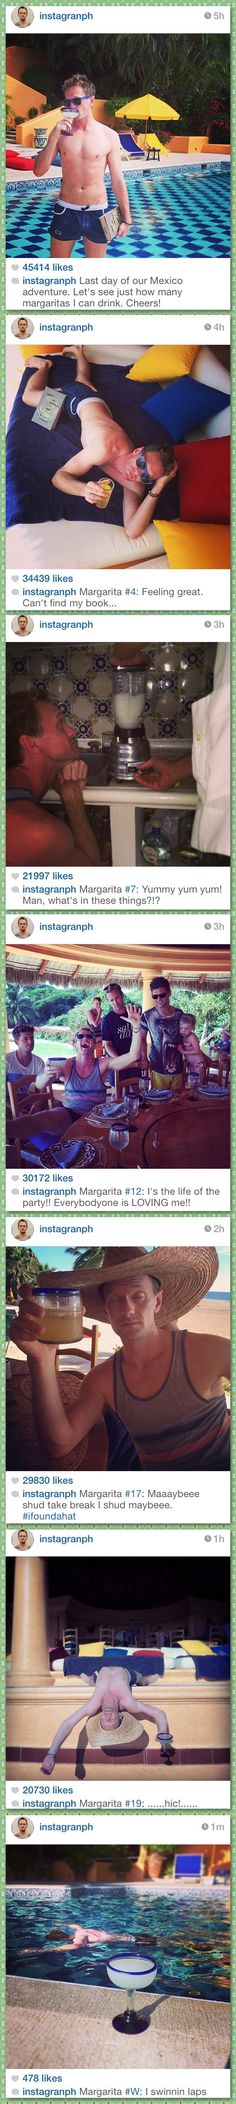 Neil Patrick Harris documents his last day of vacation in Mexico…pretty funny lol Neil Patrick Harris, Lol, Mexico Vacation, How I Met Your Mother, Funny Cute, Funny Pick, Freaking Hilarious, I Love To Laugh, Laughing So Hard